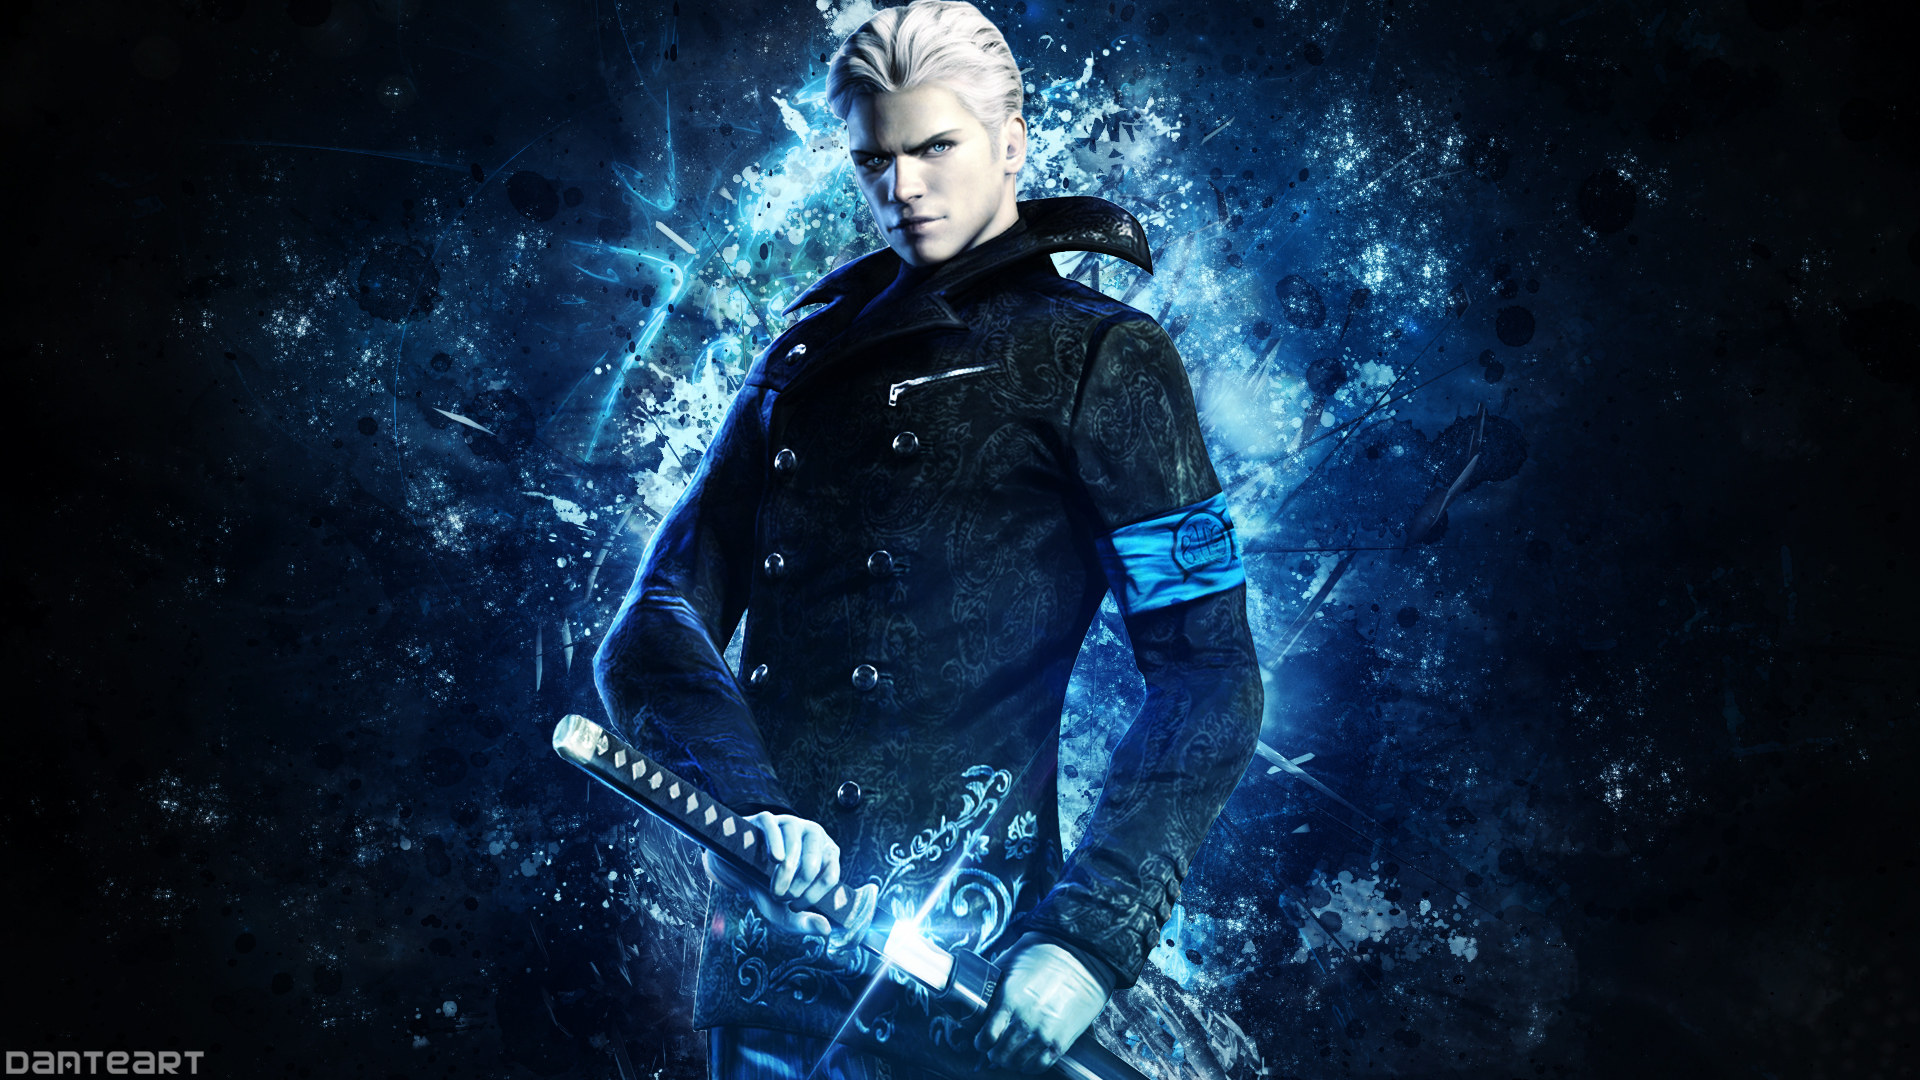 Dmc Devil May Cry Vergil Wallpaper By Danteartwallpapers On Deviantart